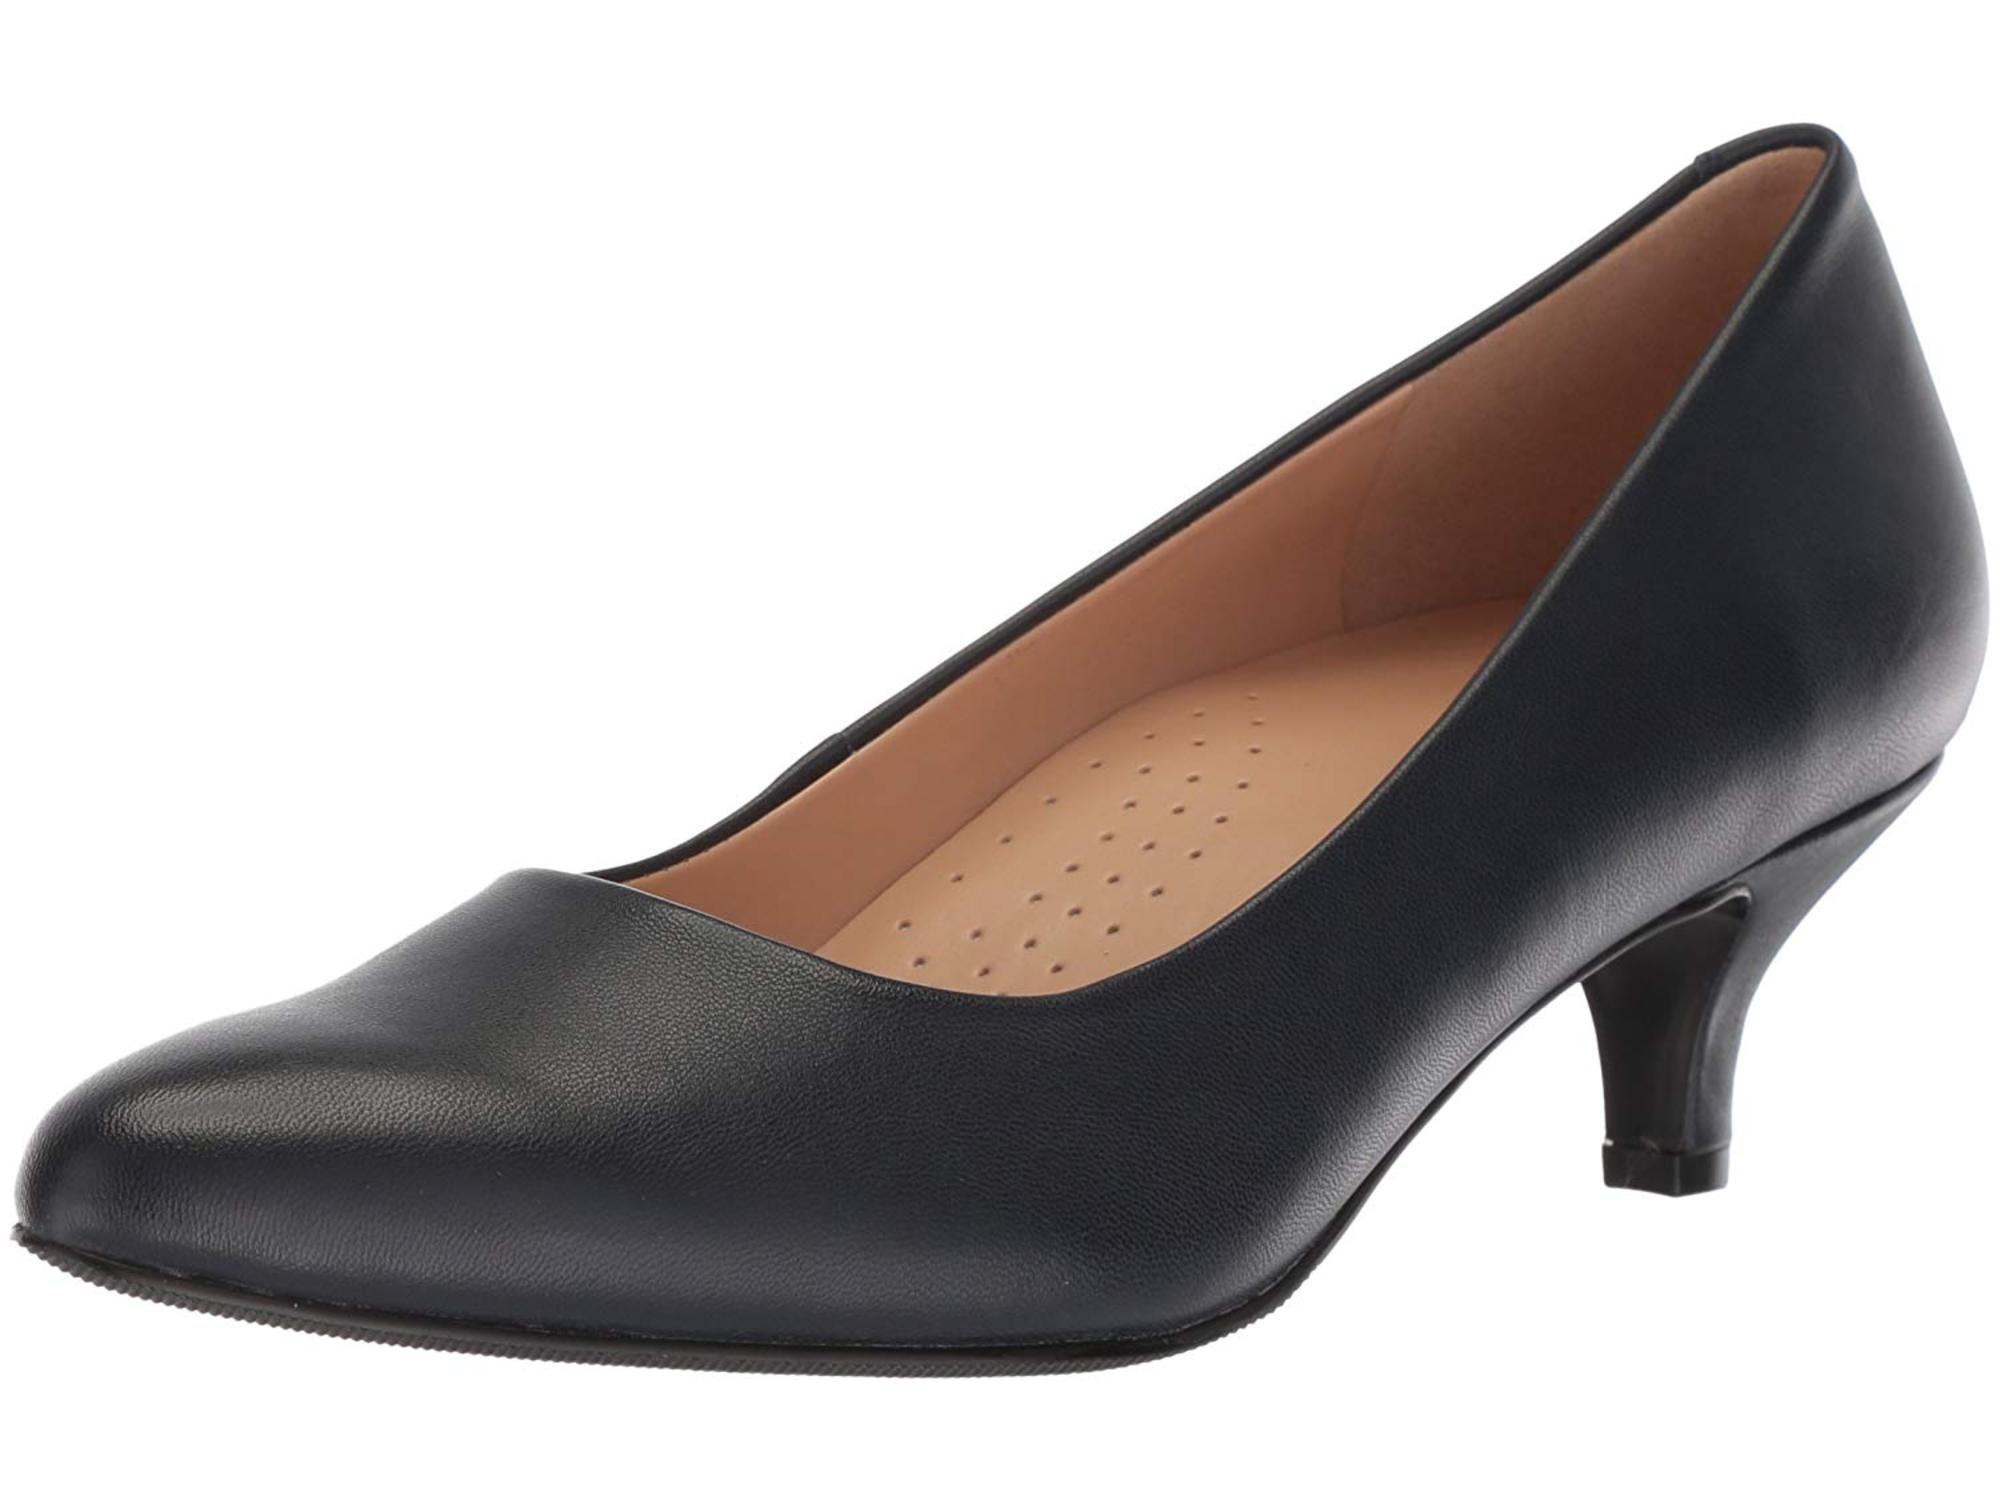 Women's Trotters Kiera Pump Economical, stylish, and eye-catching shoes